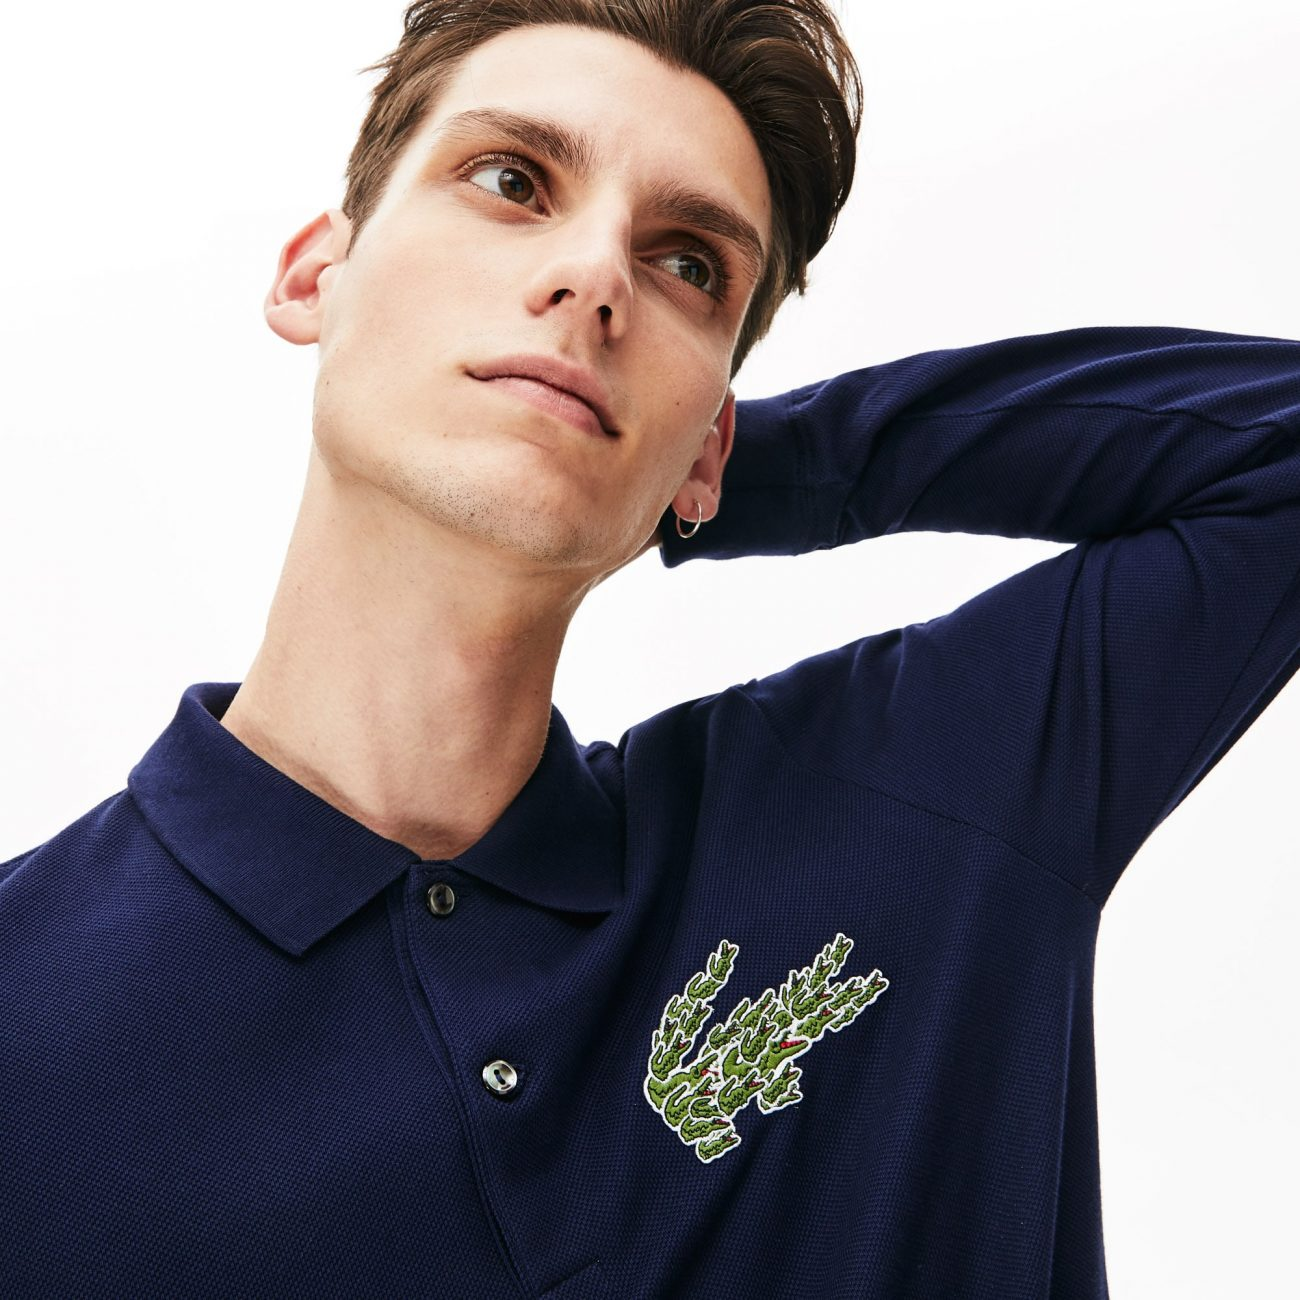 lacoste-croco-magic-holiday-2019-collection-9